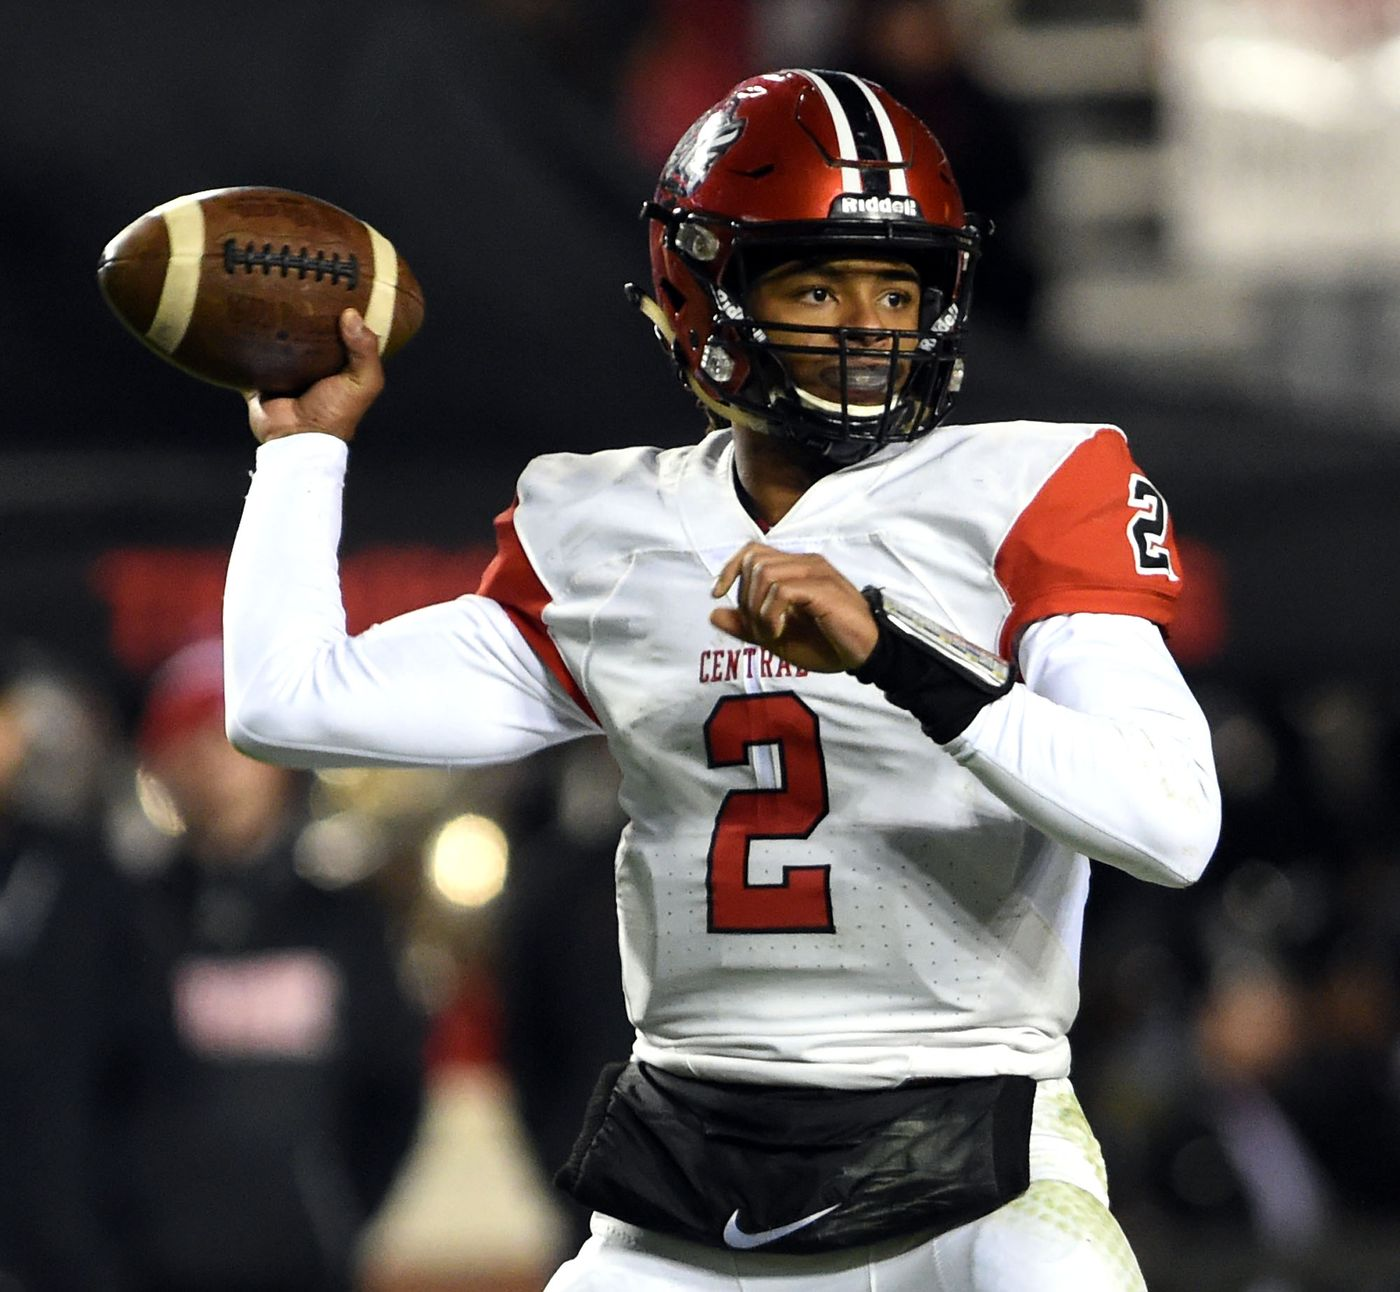 Alabama All-Star Team Adds QB Peter Parrish, DB Nehemiah Pritchett for 2018 Ala-Miss Game